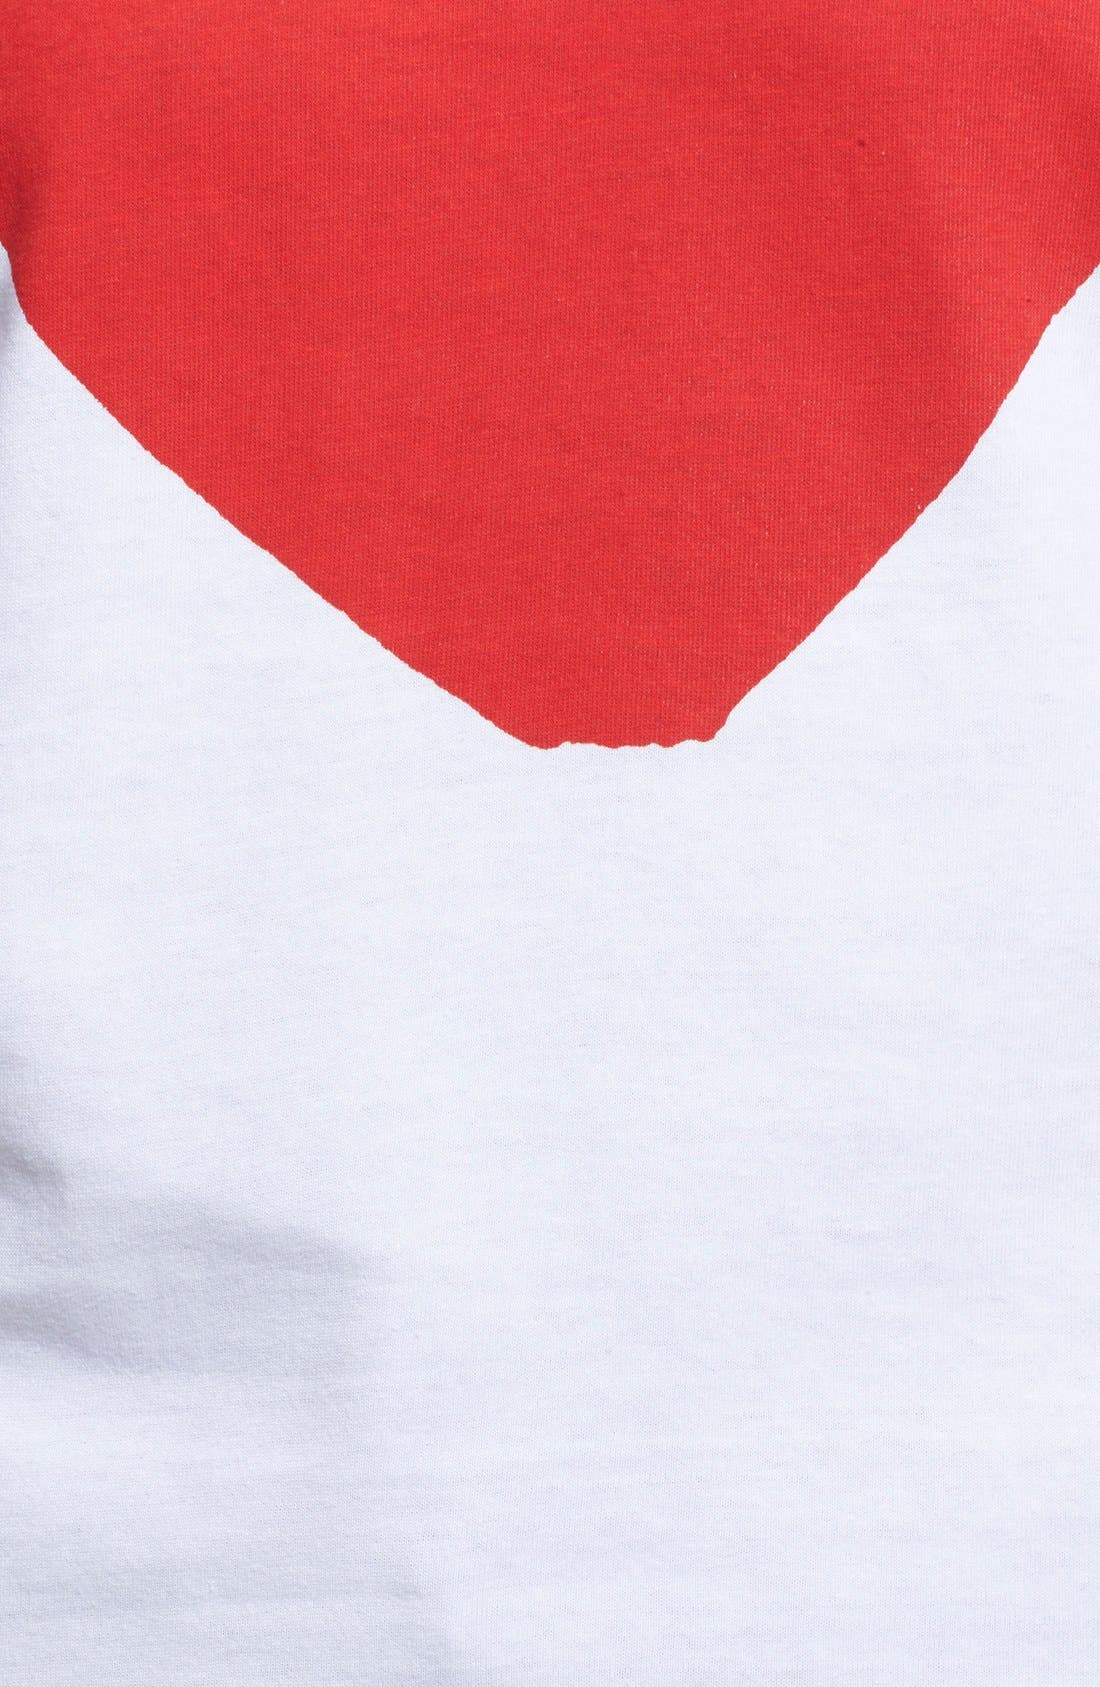 Comme des Garçons PLAY Graphic Cotton Tee,                             Alternate thumbnail 5, color,                             White